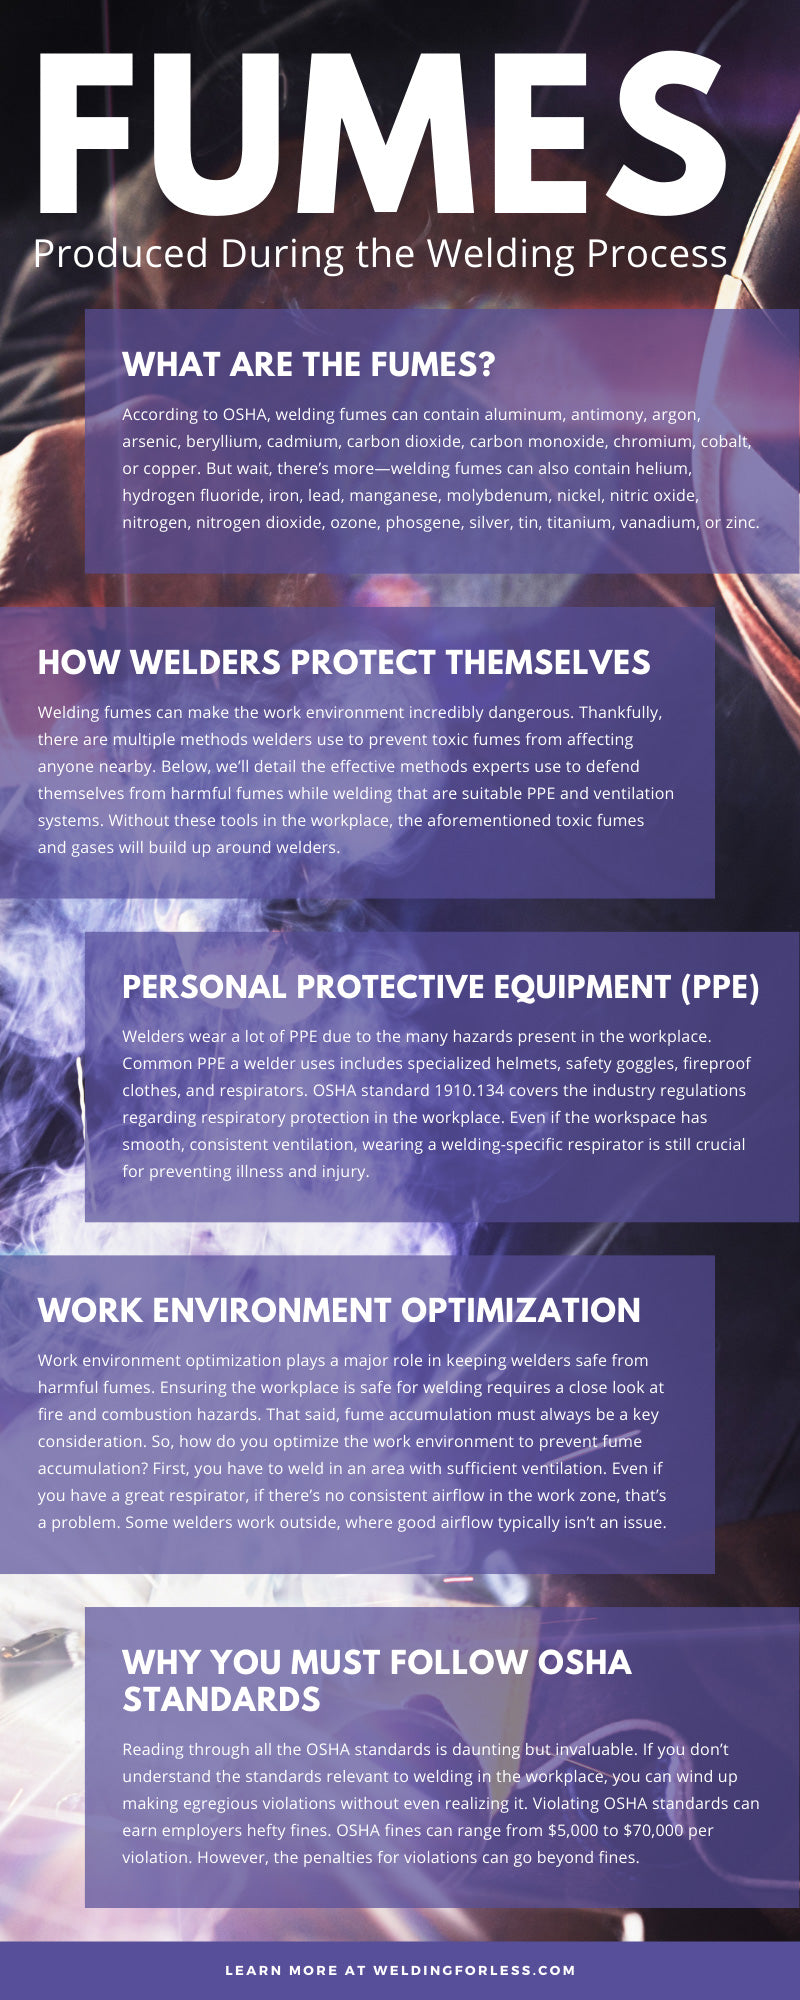 Fumes Produced During the Welding Process